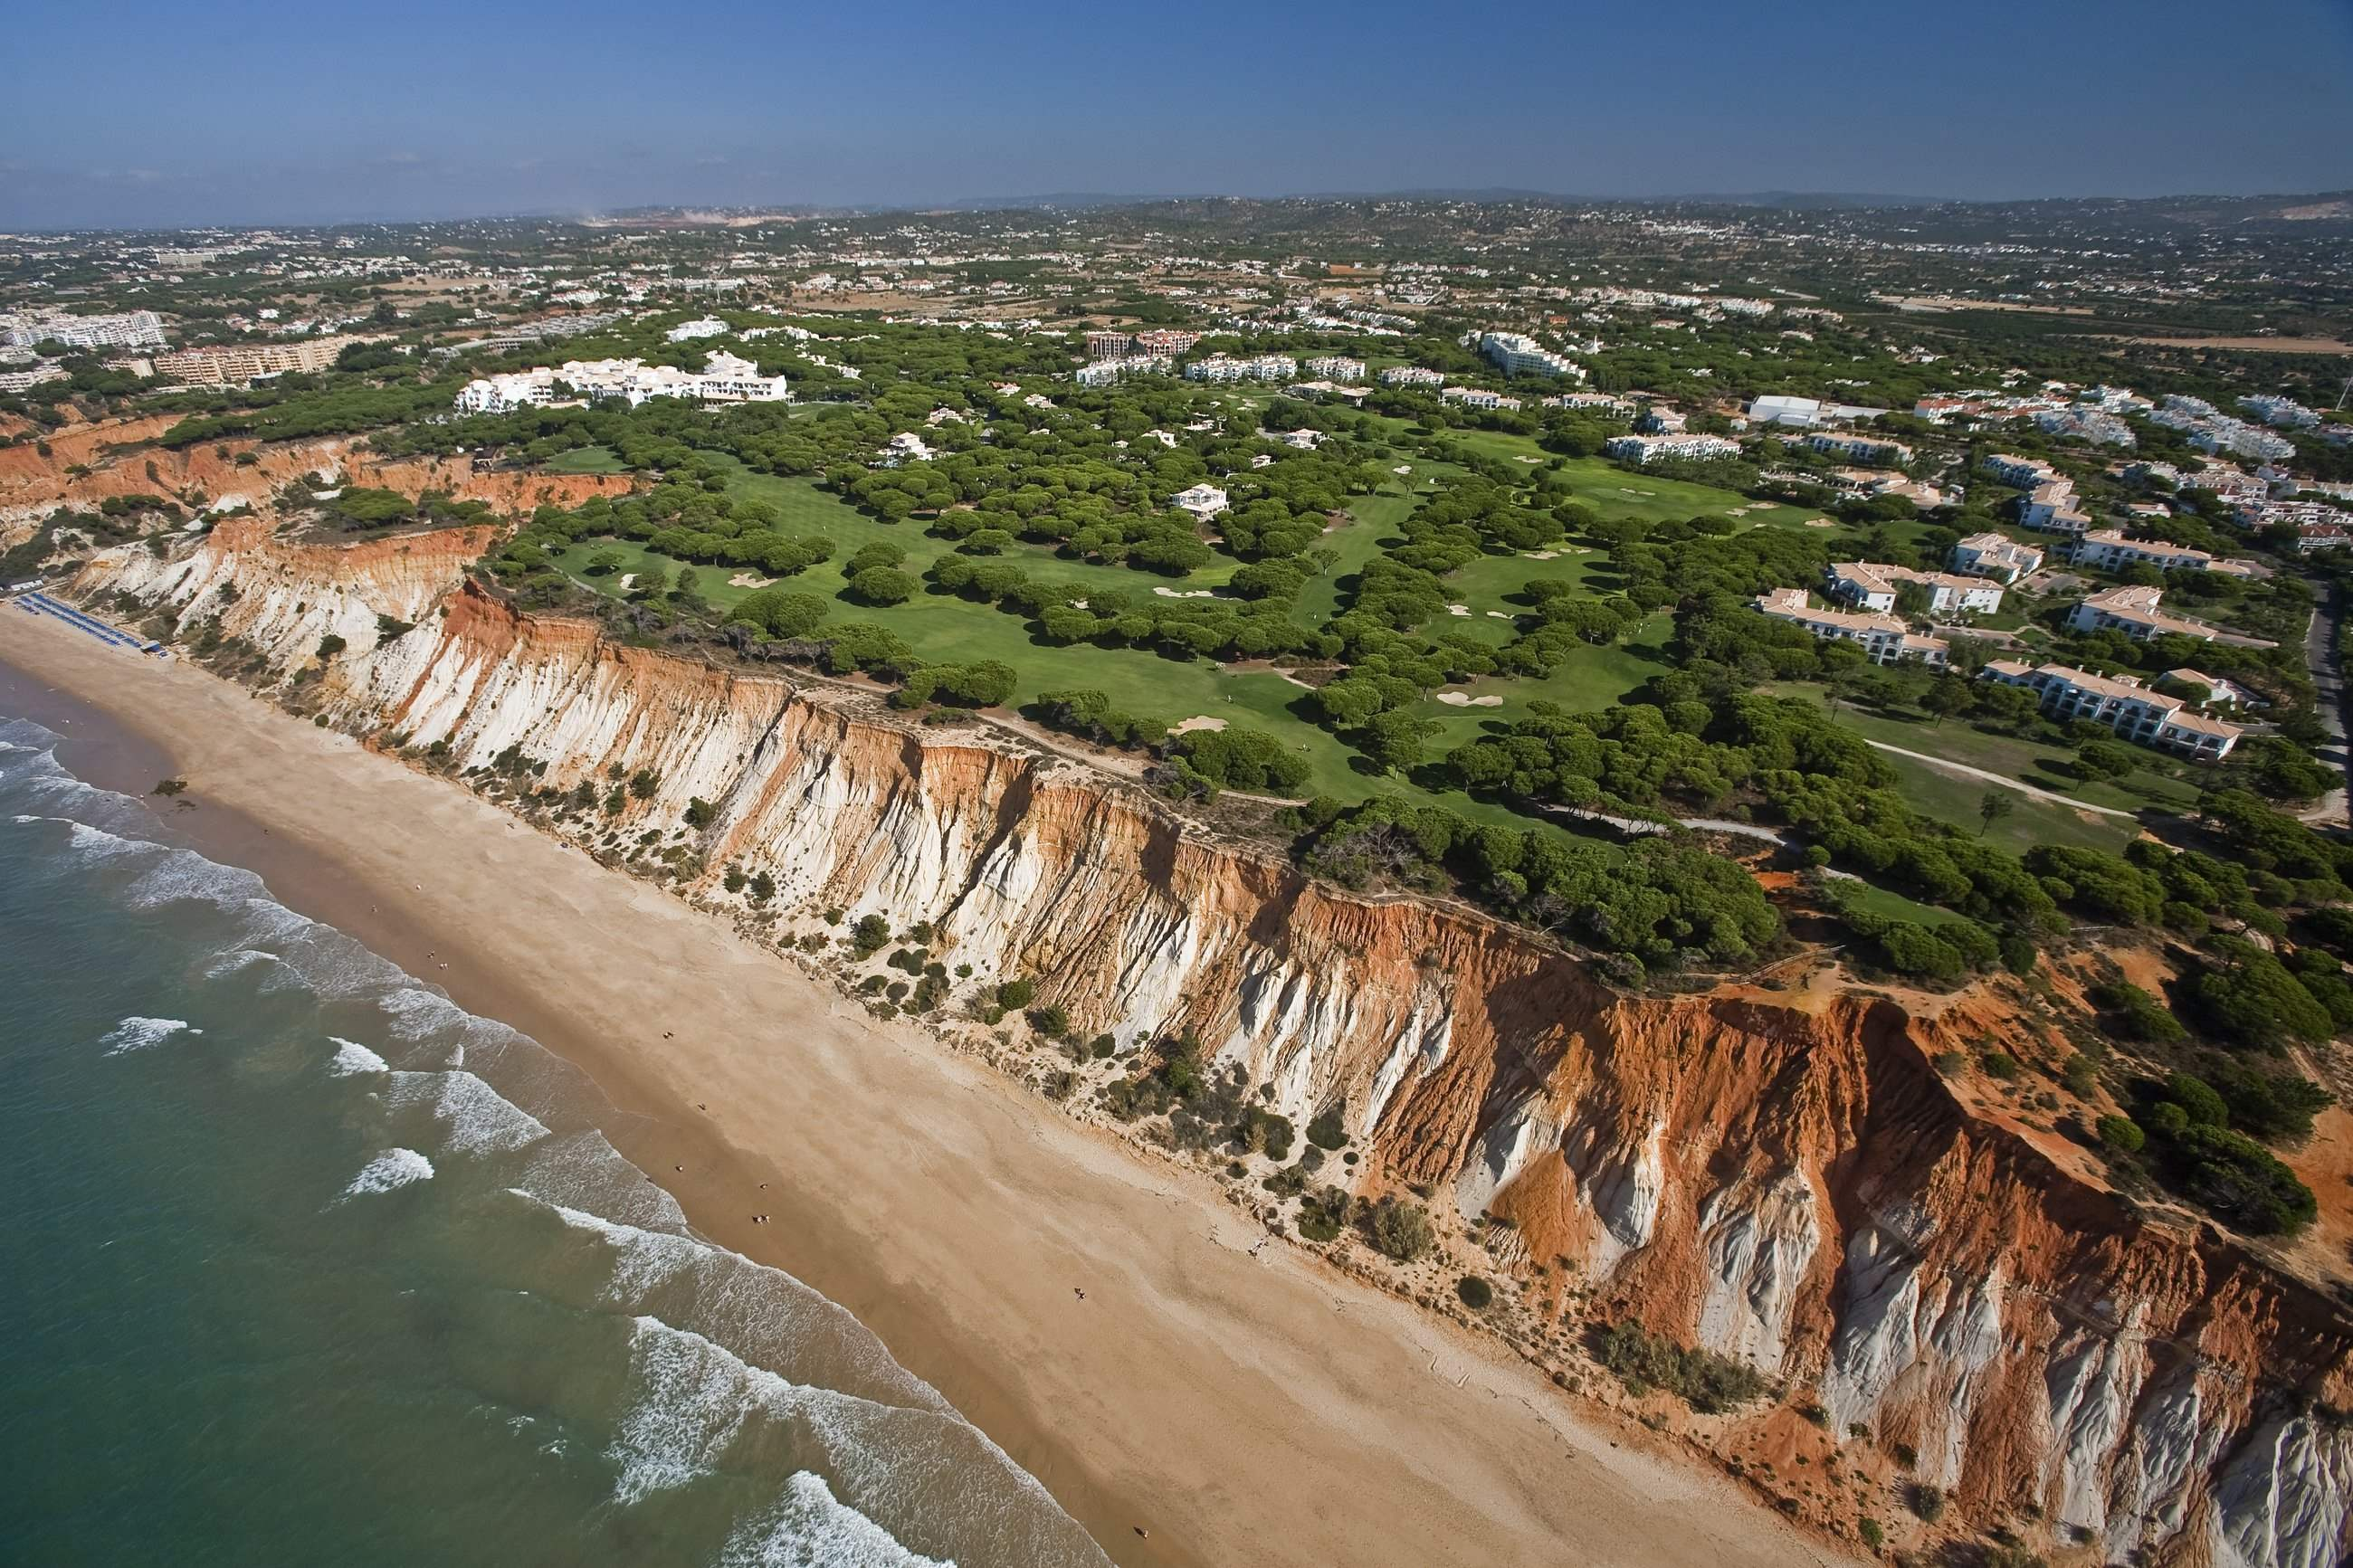 Pine Cliffs Suites, 3 Bedroom Penthouse, room only basis, 3 bedroom apartment in Pine Cliffs Resort, Algarve Photo #14